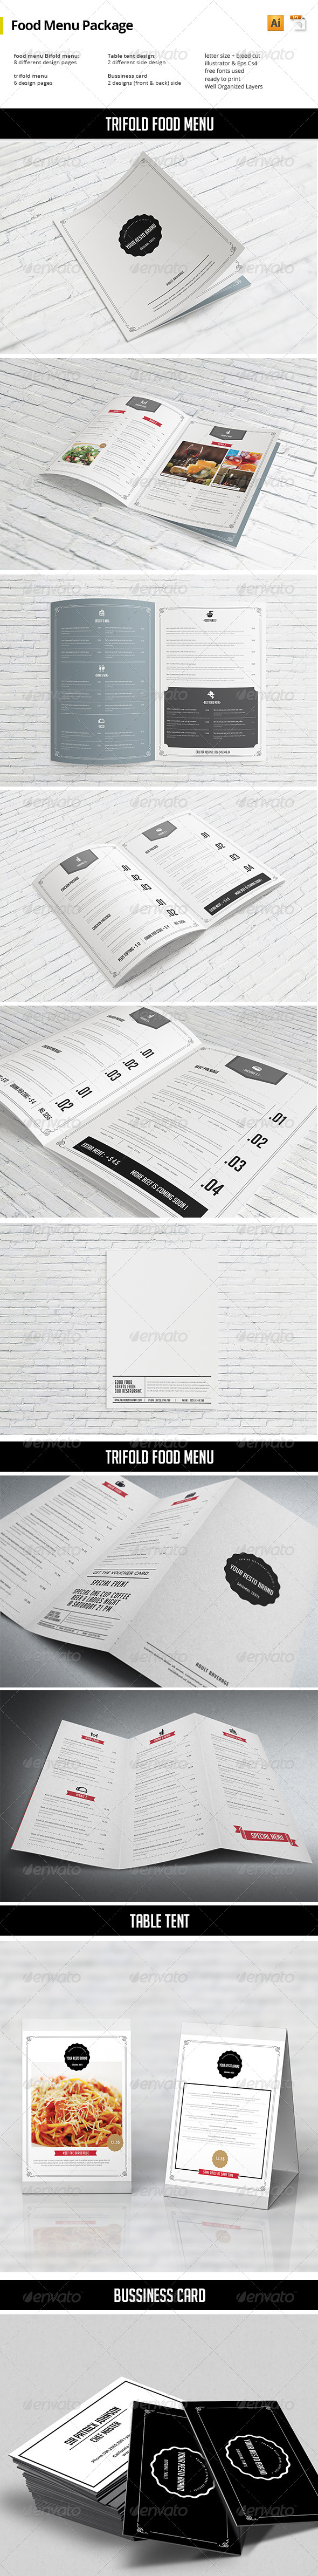 GraphicRiver Food Menu Package 8158182